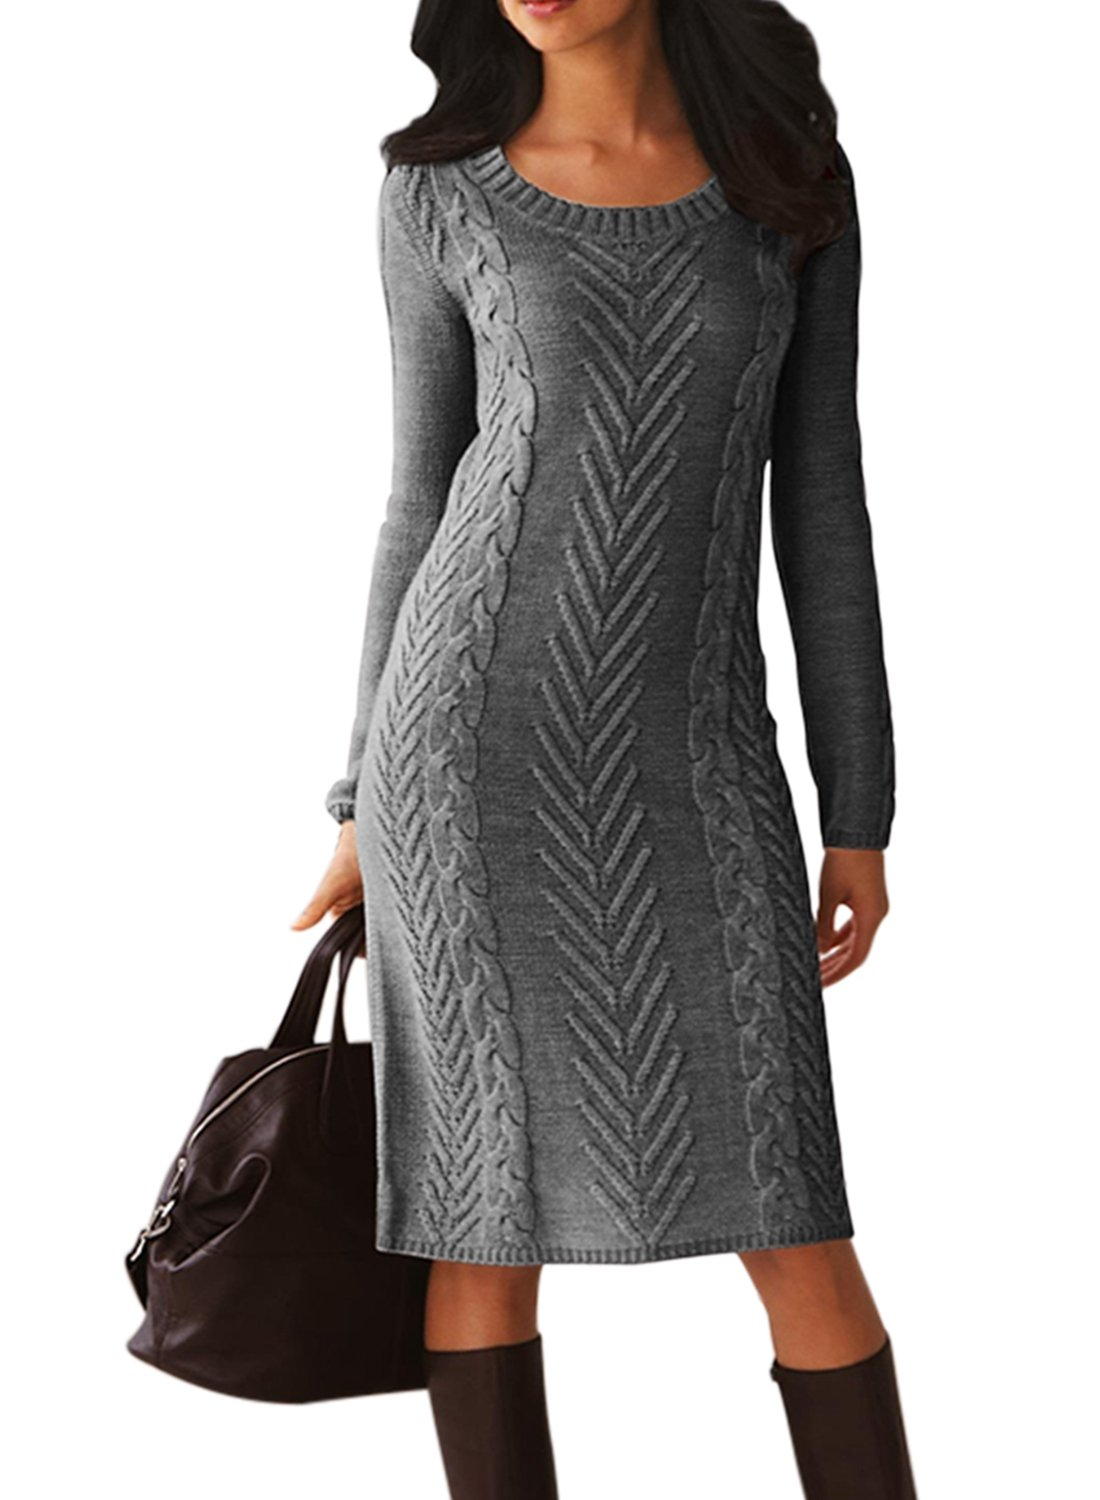 Sweater Dress - Women's Thickening Long Fleece Sweatshirt String Hoodie Dress Pullover Plus Size